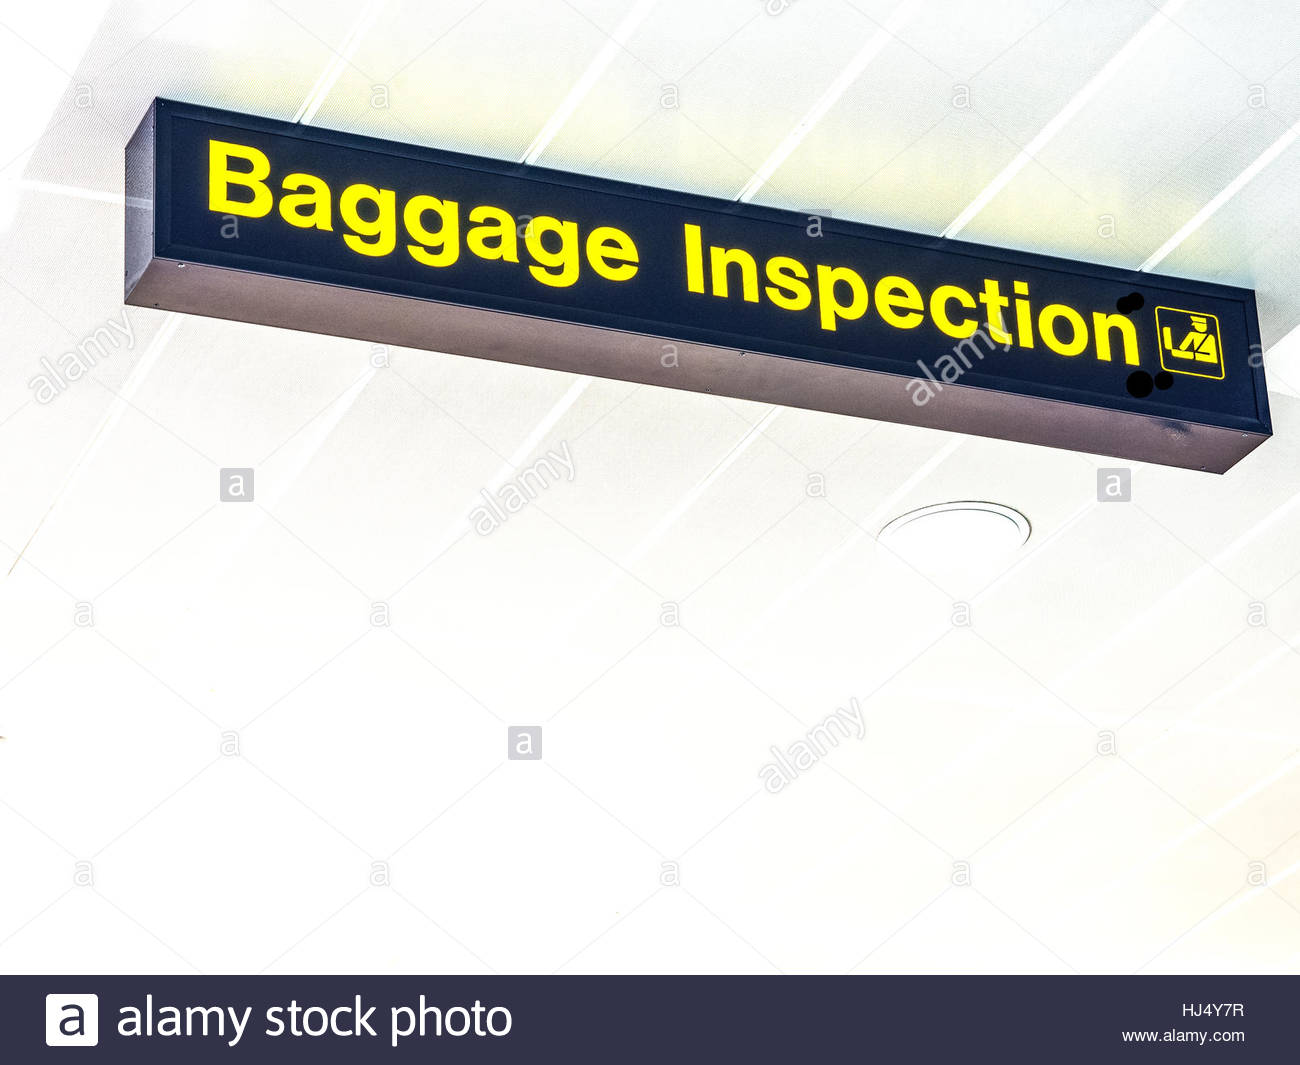 Baggage Inspection airport sign with near white background. - Stock Image